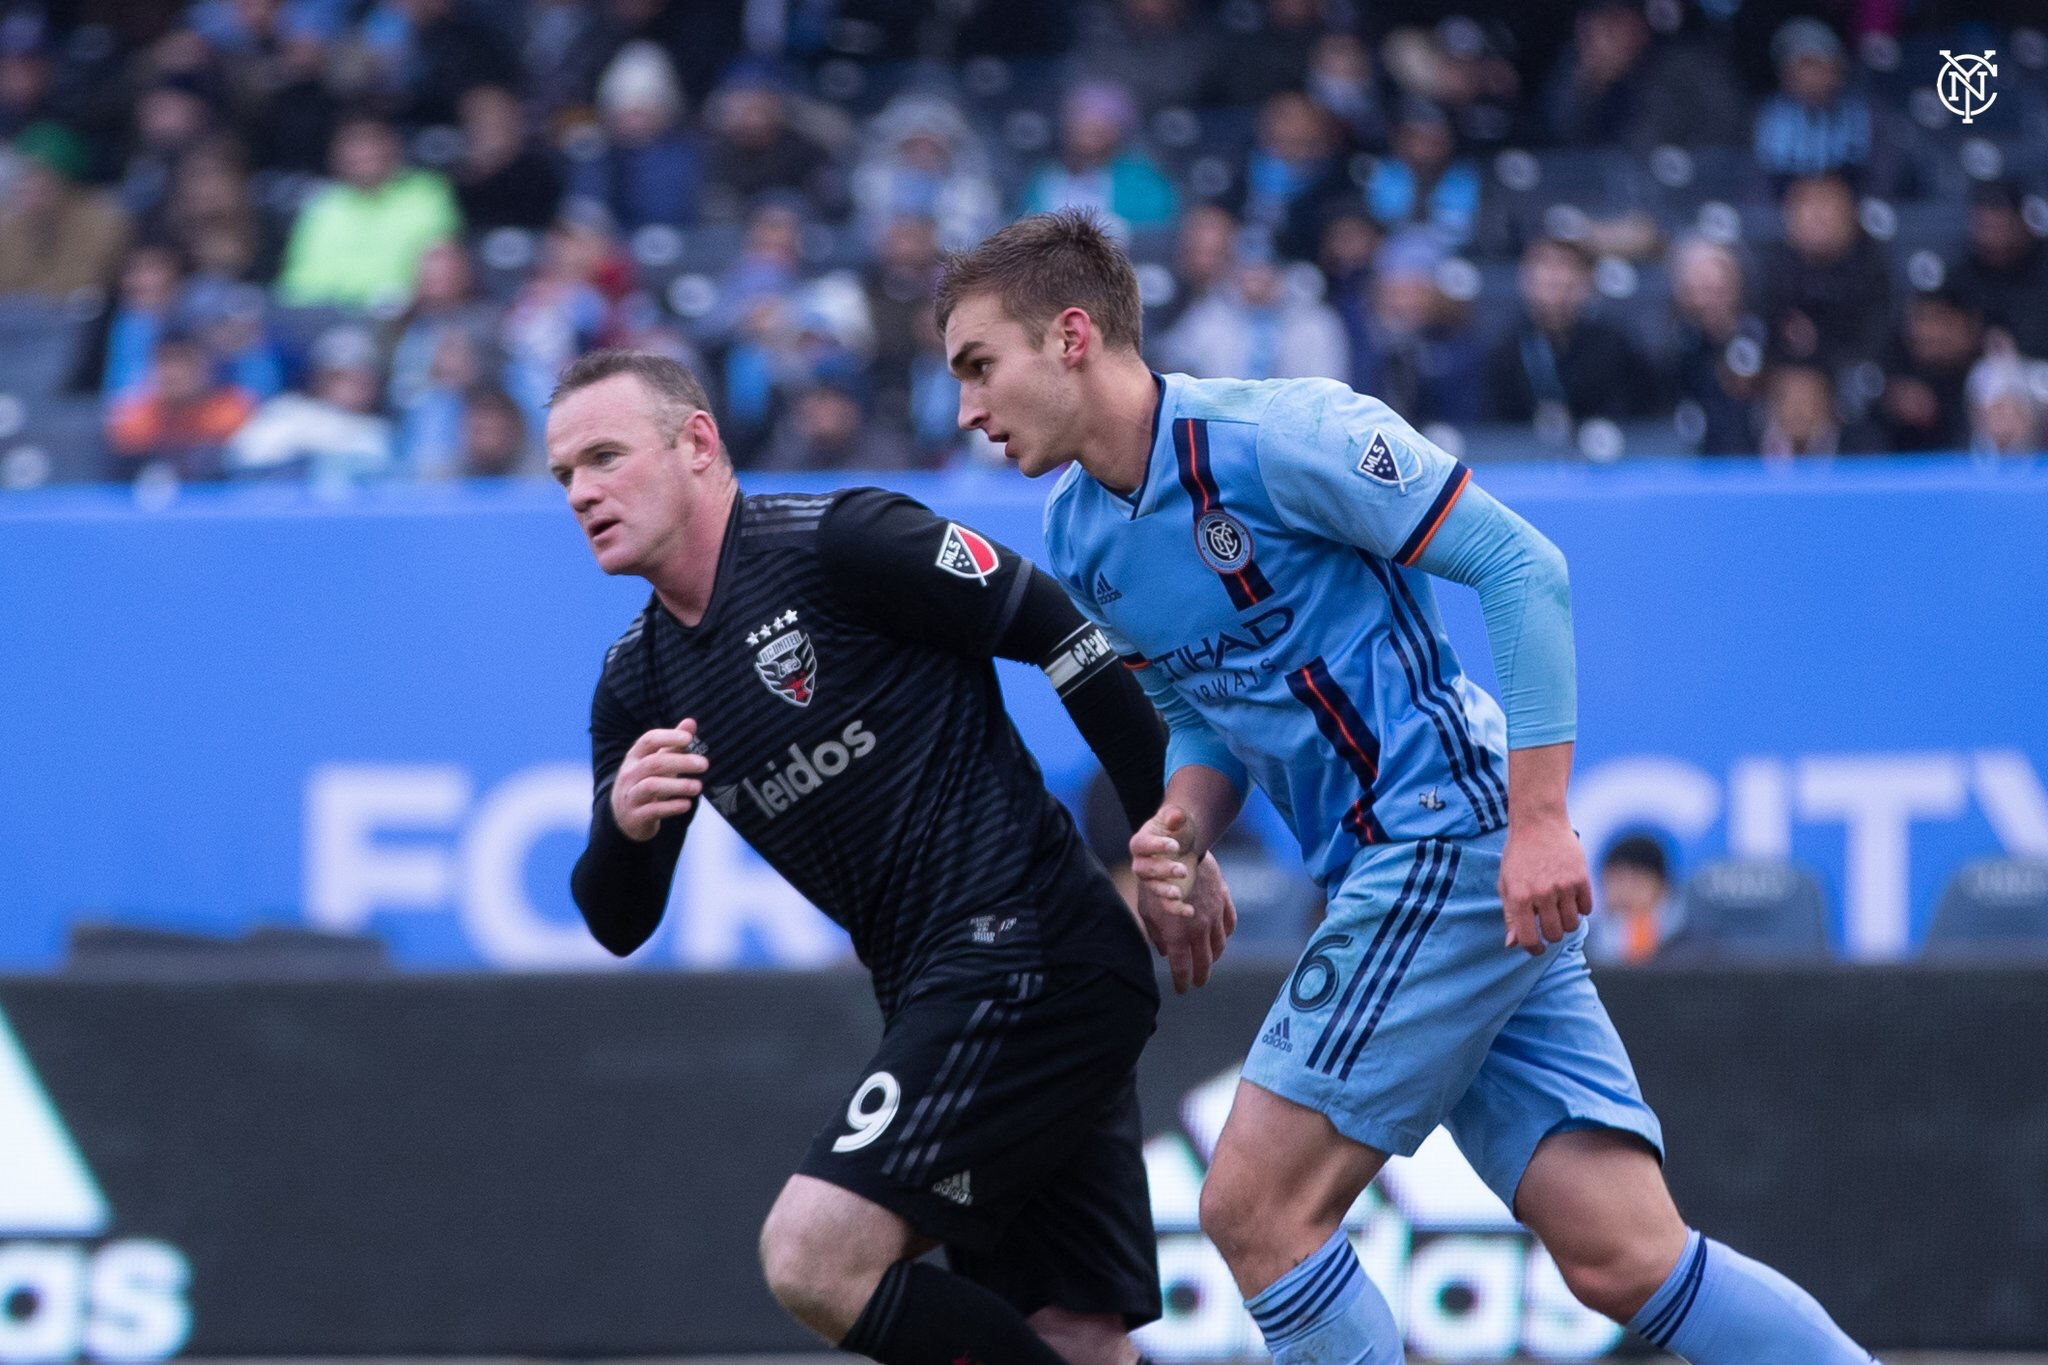 DC United's Wayne Rooney and NYCFC's James Sands